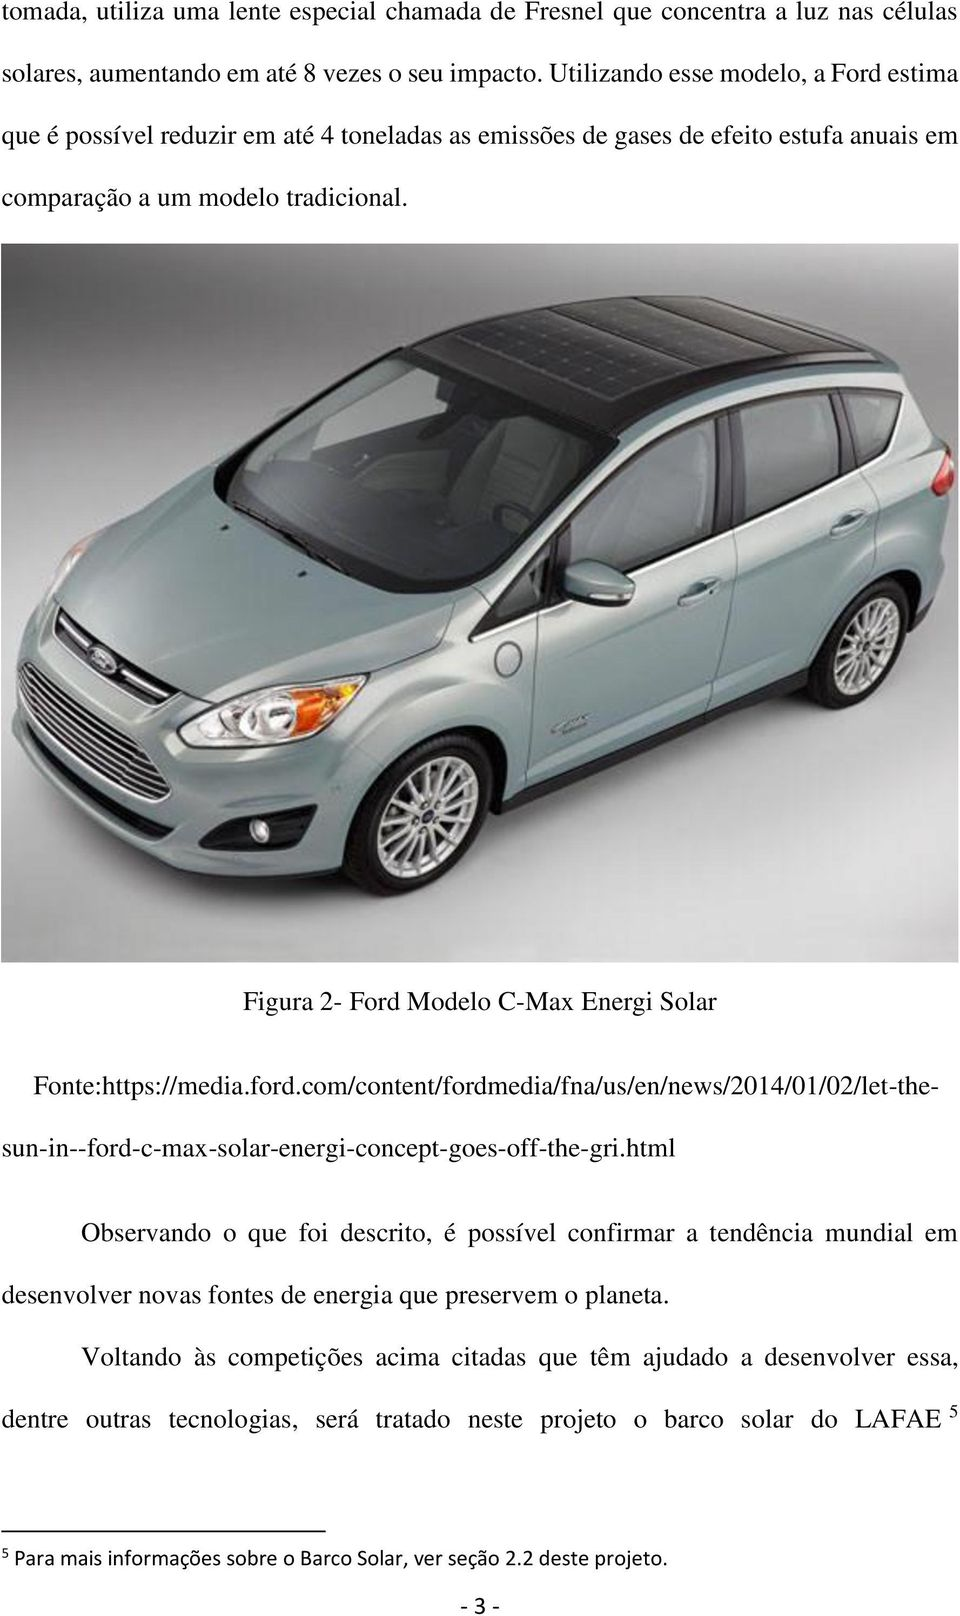 Figura 2- Ford Modelo C-Max Energi Solar Fonte:https://media.ford.com/content/fordmedia/fna/us/en/news/2014/01/02/let-thesun-in--ford-c-max-solar-energi-concept-goes-off-the-gri.